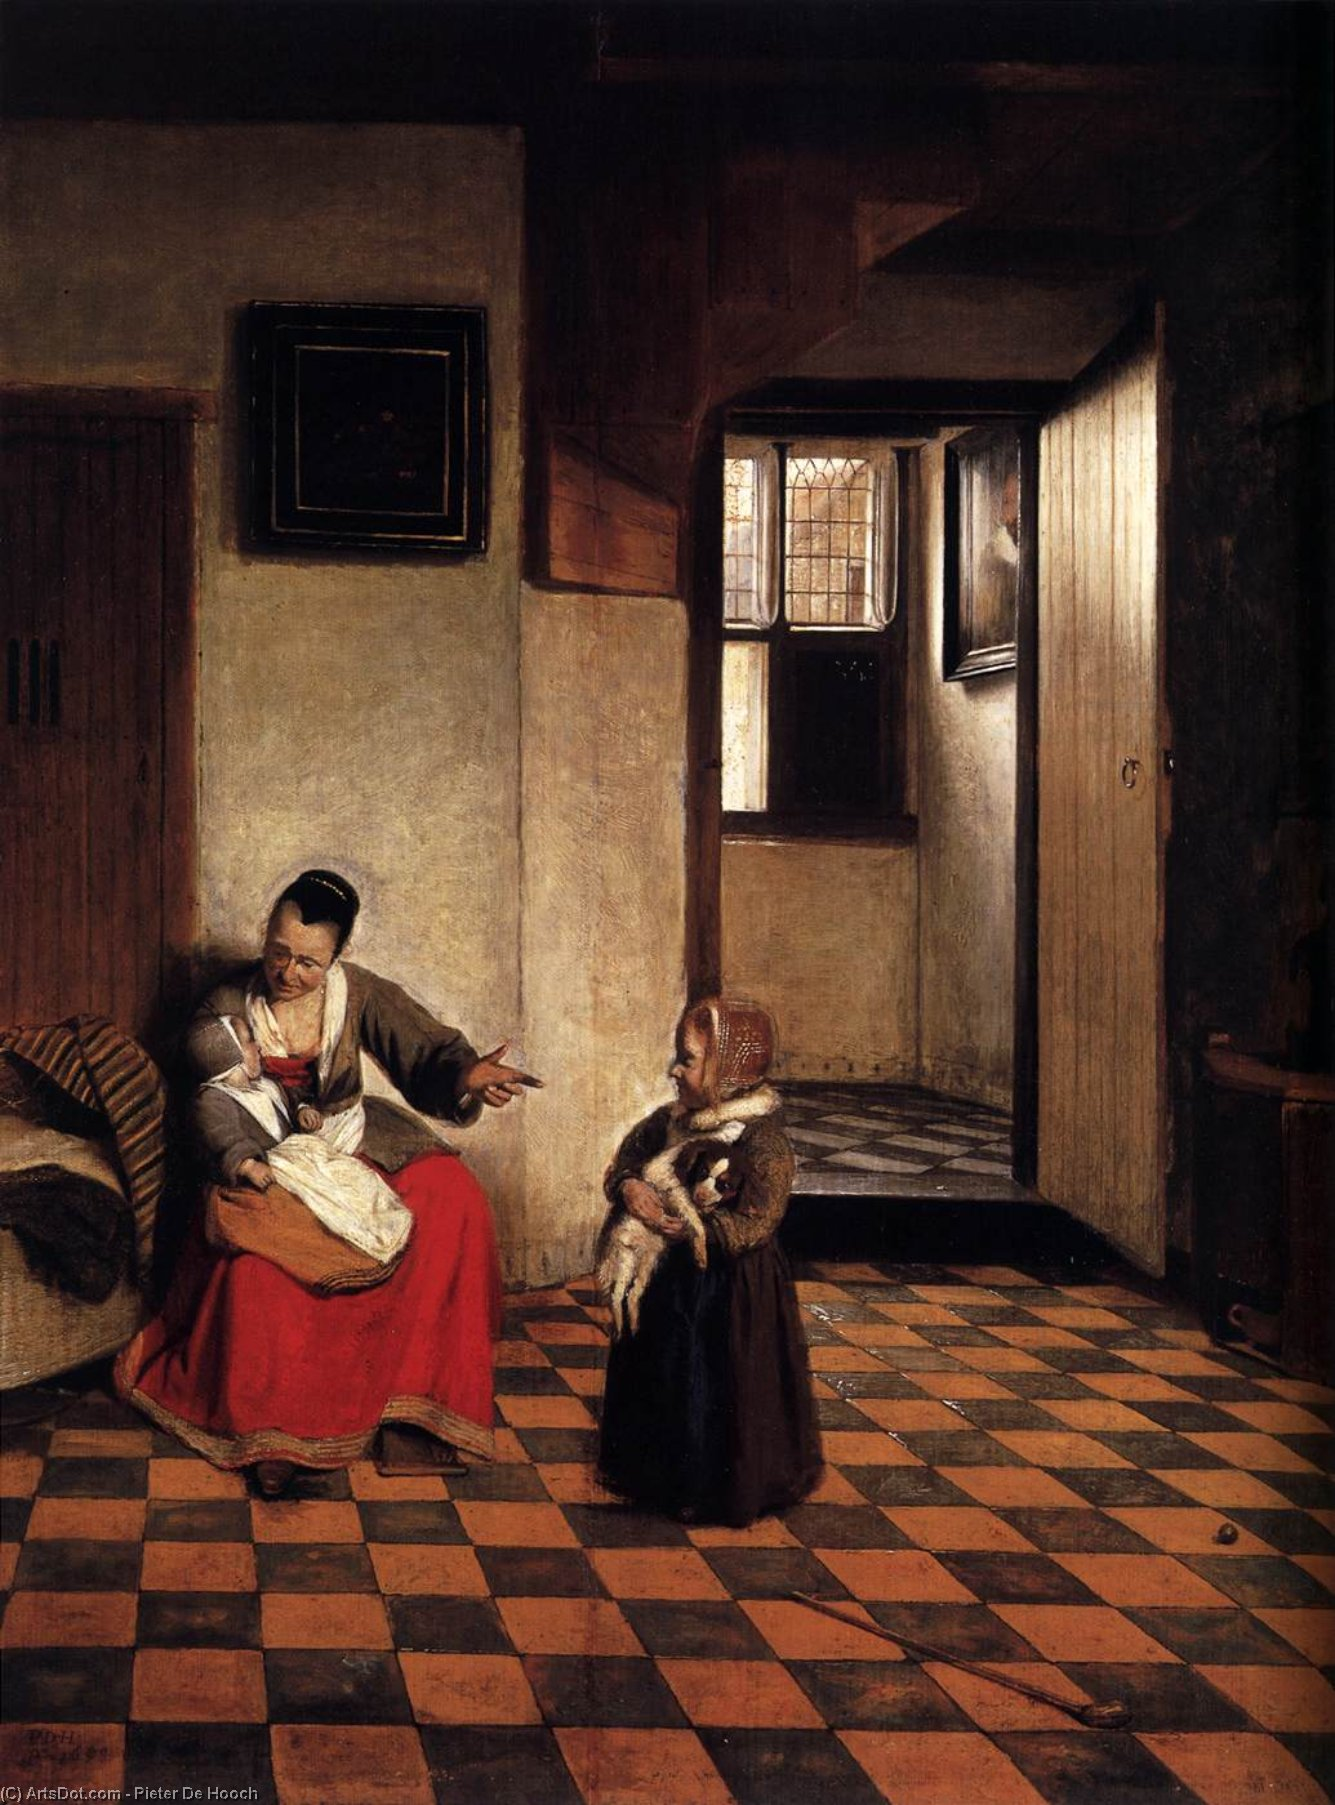 Wikioo.org - The Encyclopedia of Fine Arts - Painting, Artwork by Pieter De Hooch - A Woman with a Baby in Her Lap, and a Small Child